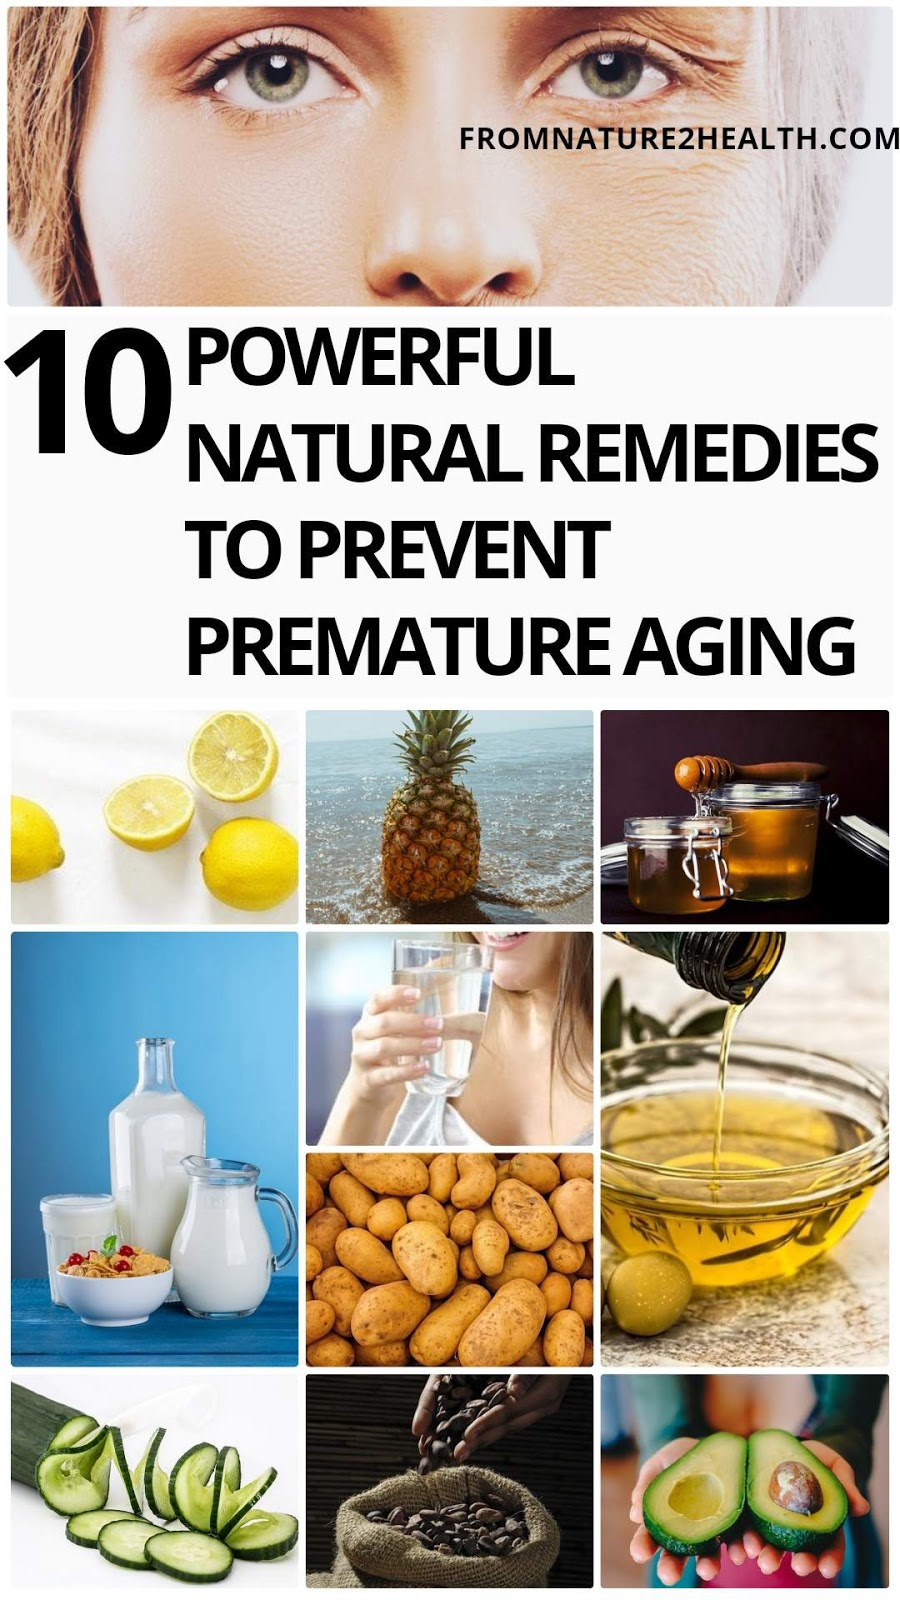 10 Powerful Natural Remedies to Prevent Premature Aging